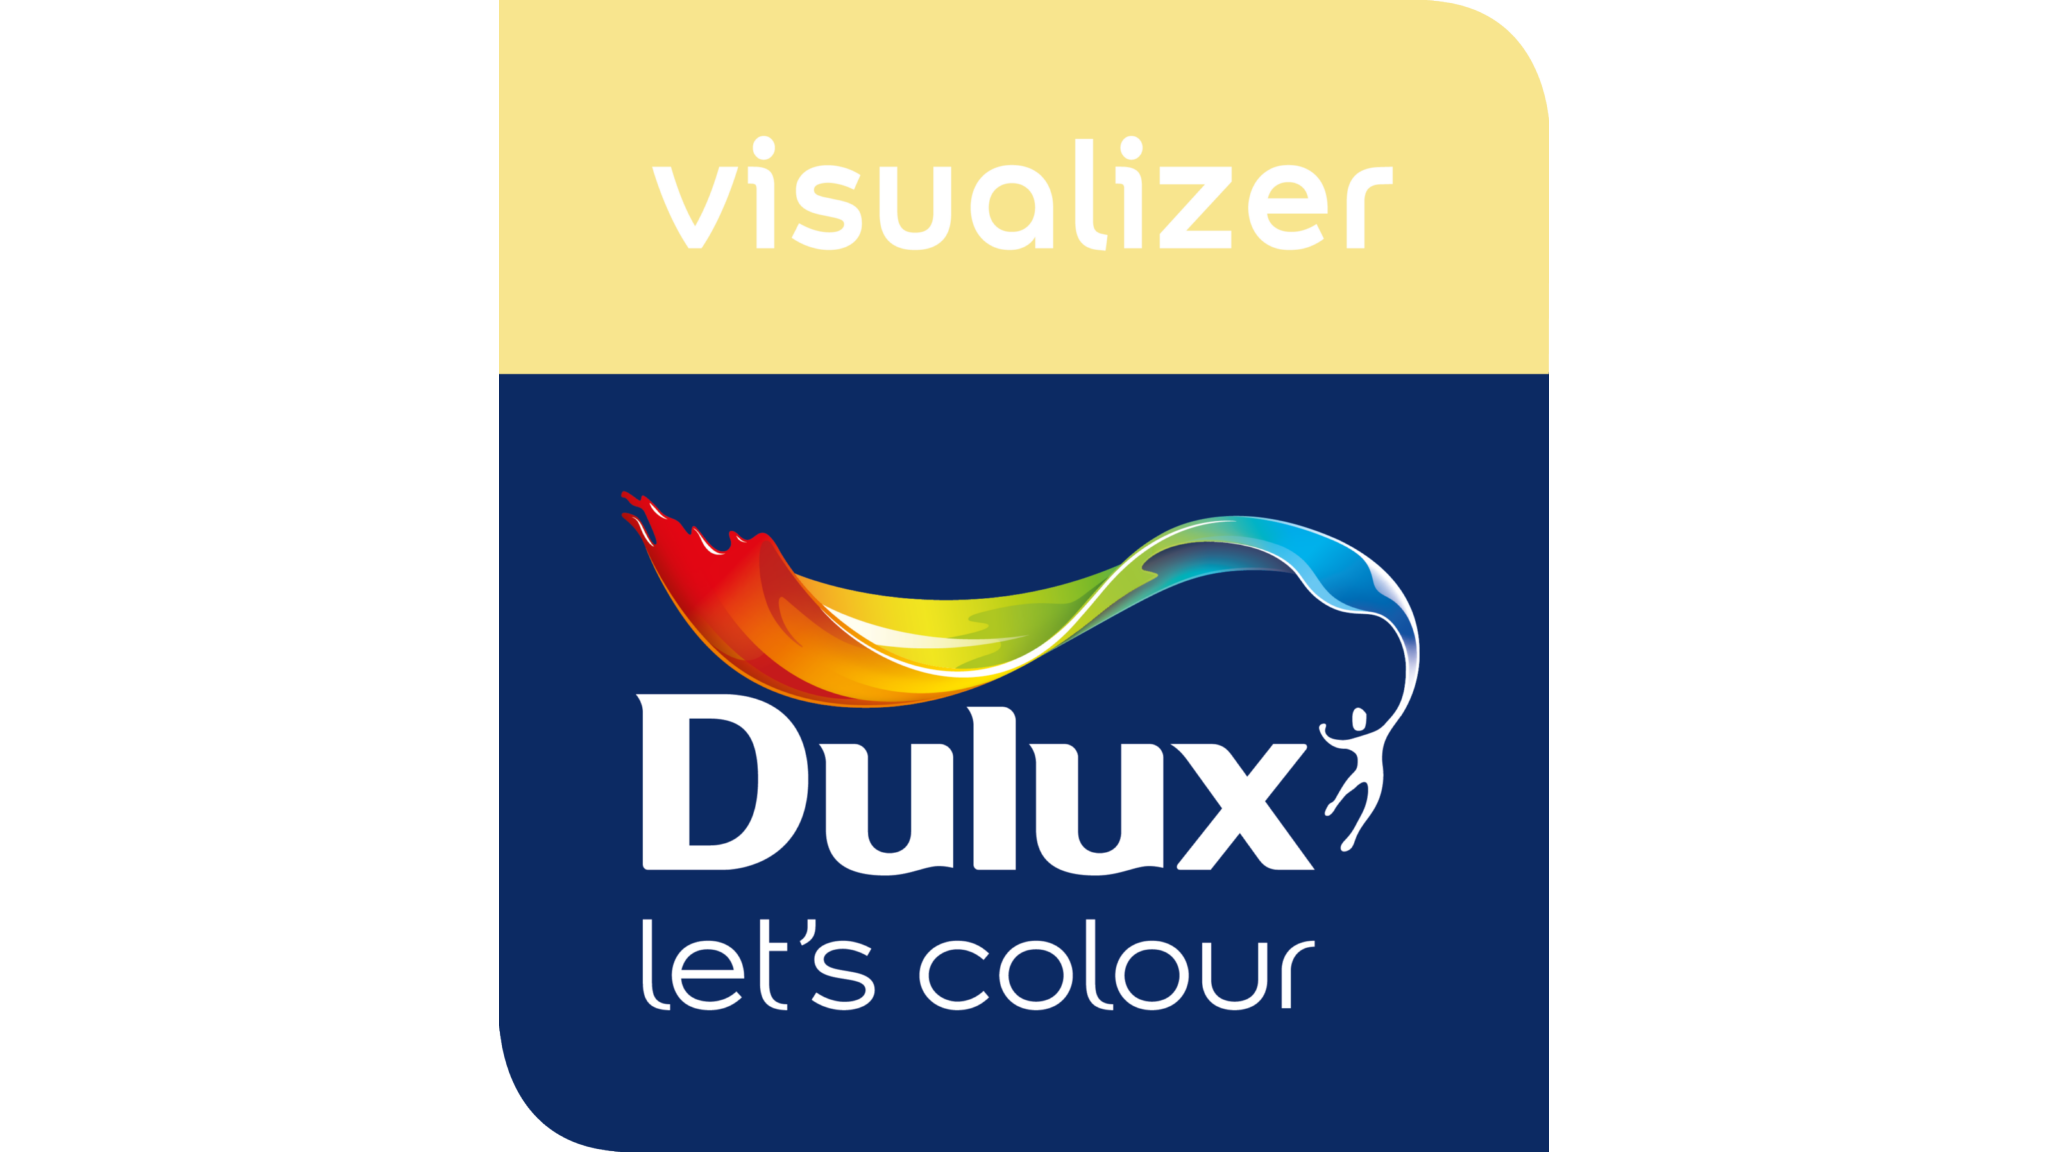 The Dulux Visualizer App.